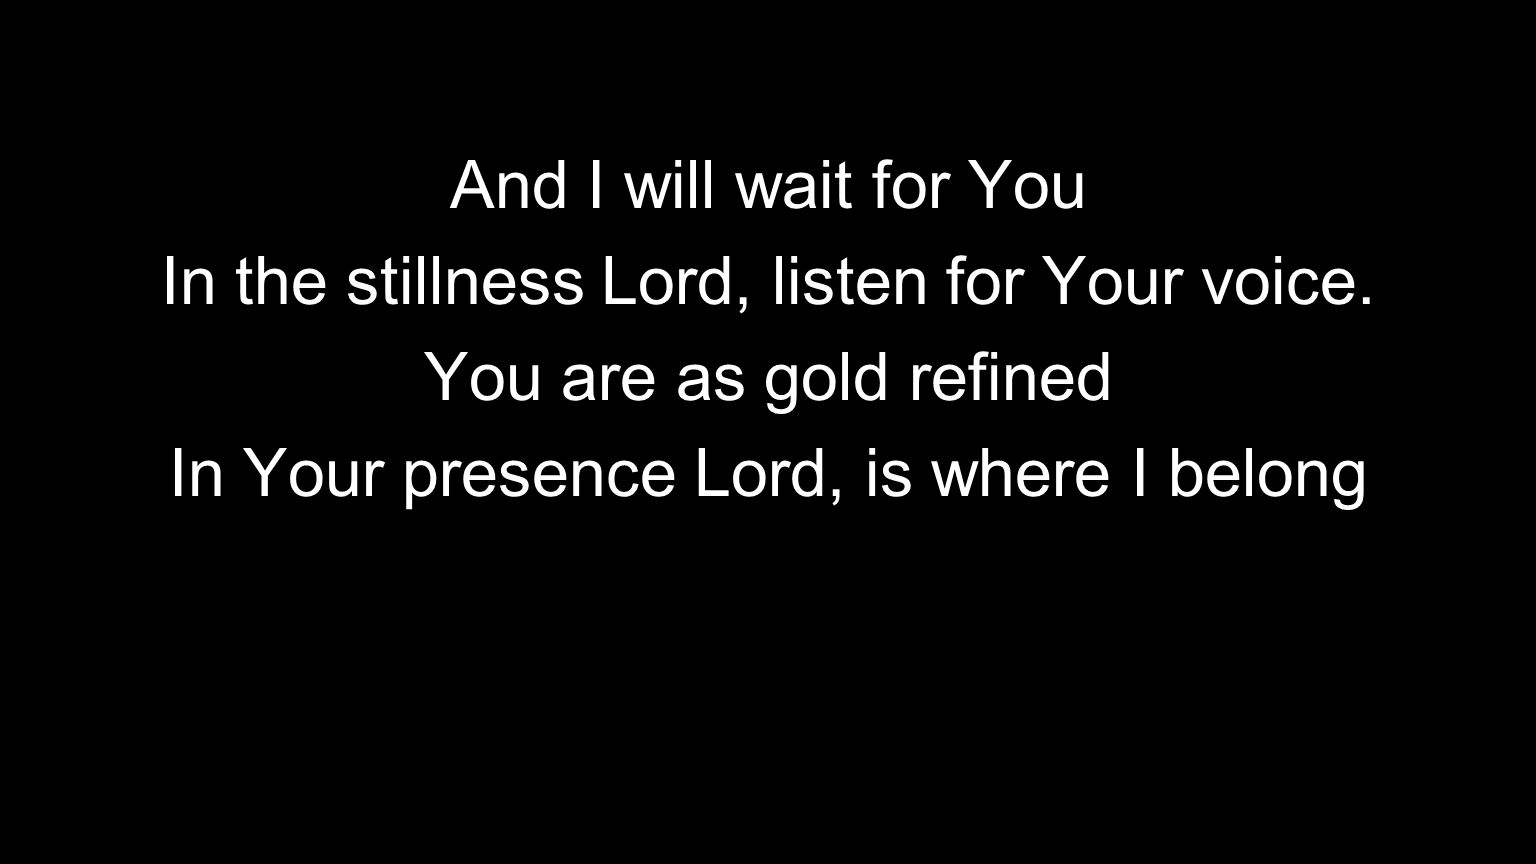 In the stillness Lord, listen for Your voice. You are as gold refined